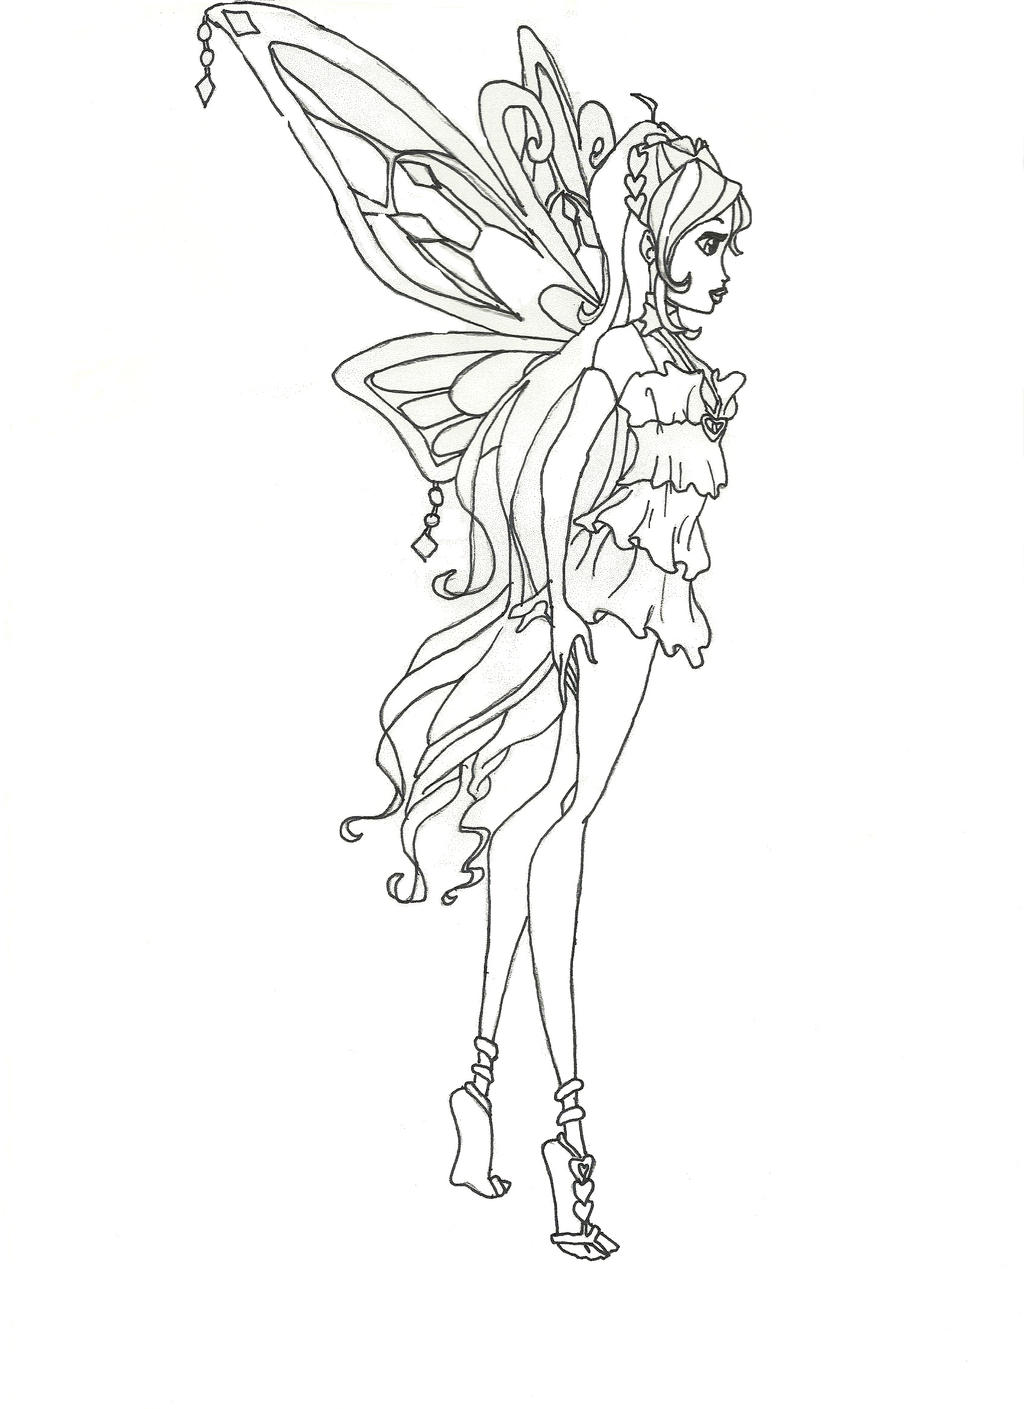 Bloom Winx club coloring pages for girls, printable free 19 ... | 1409x1024